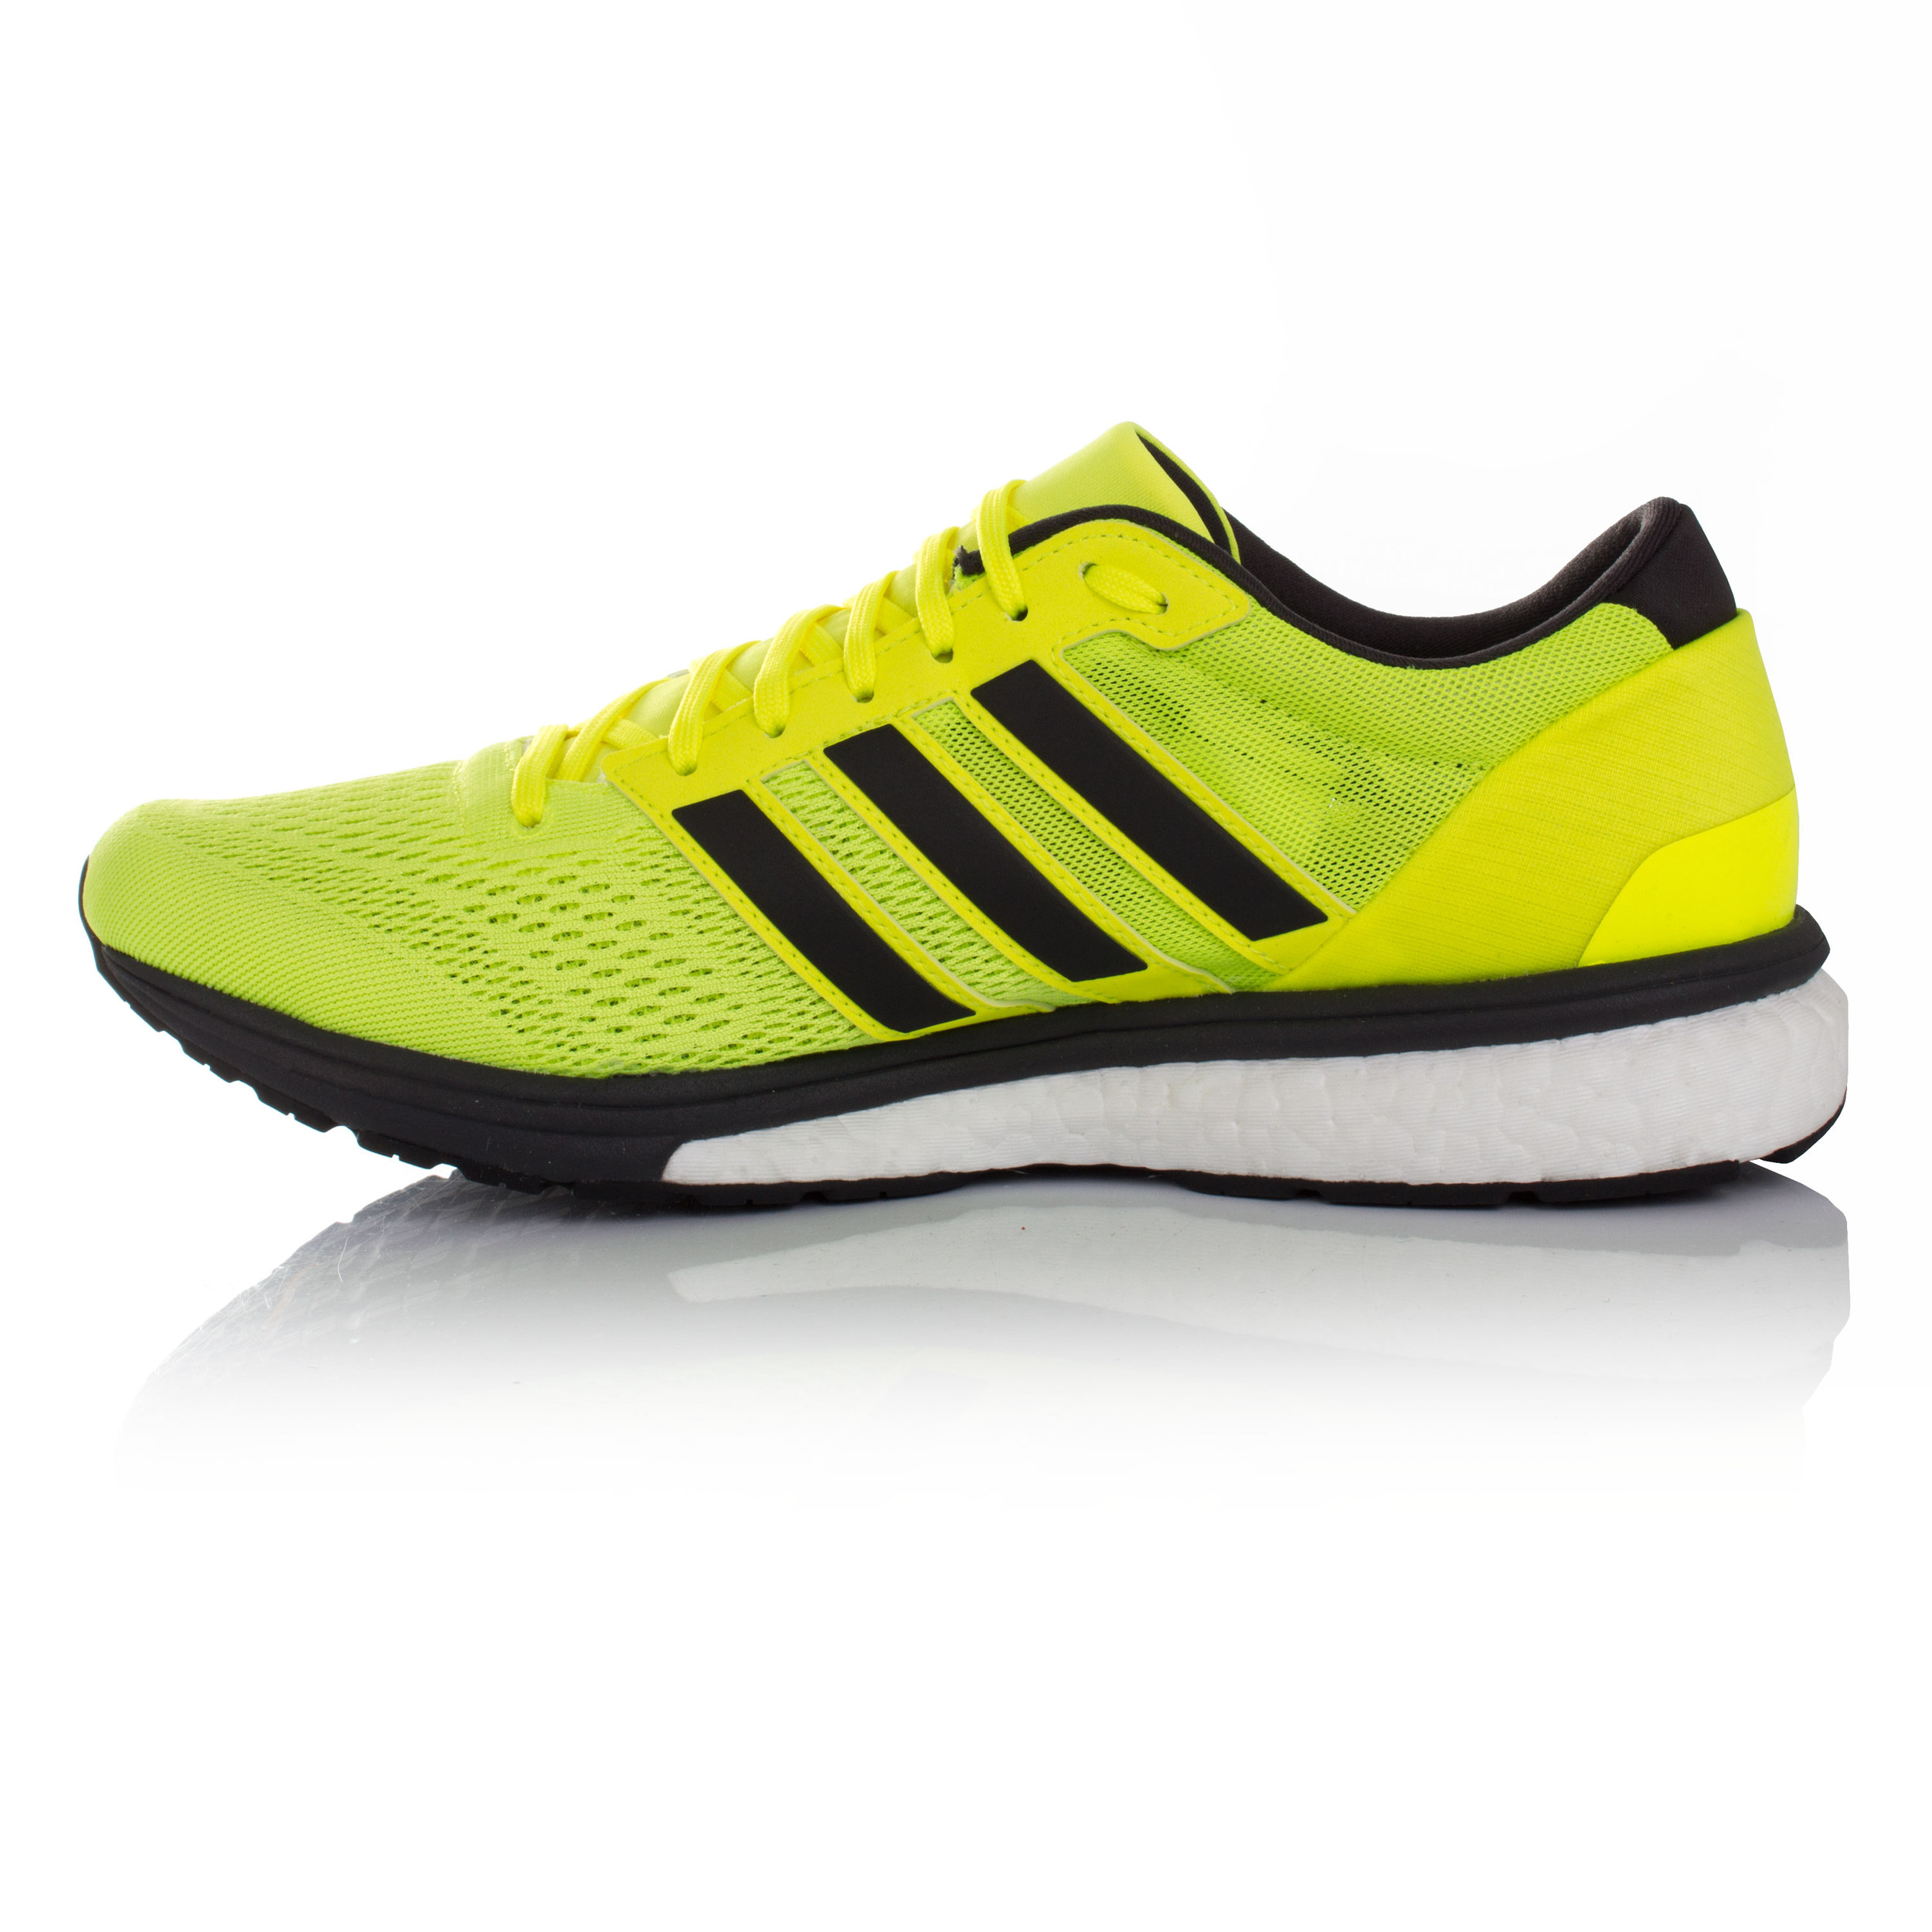 Ebay Us Mens Running Shoes